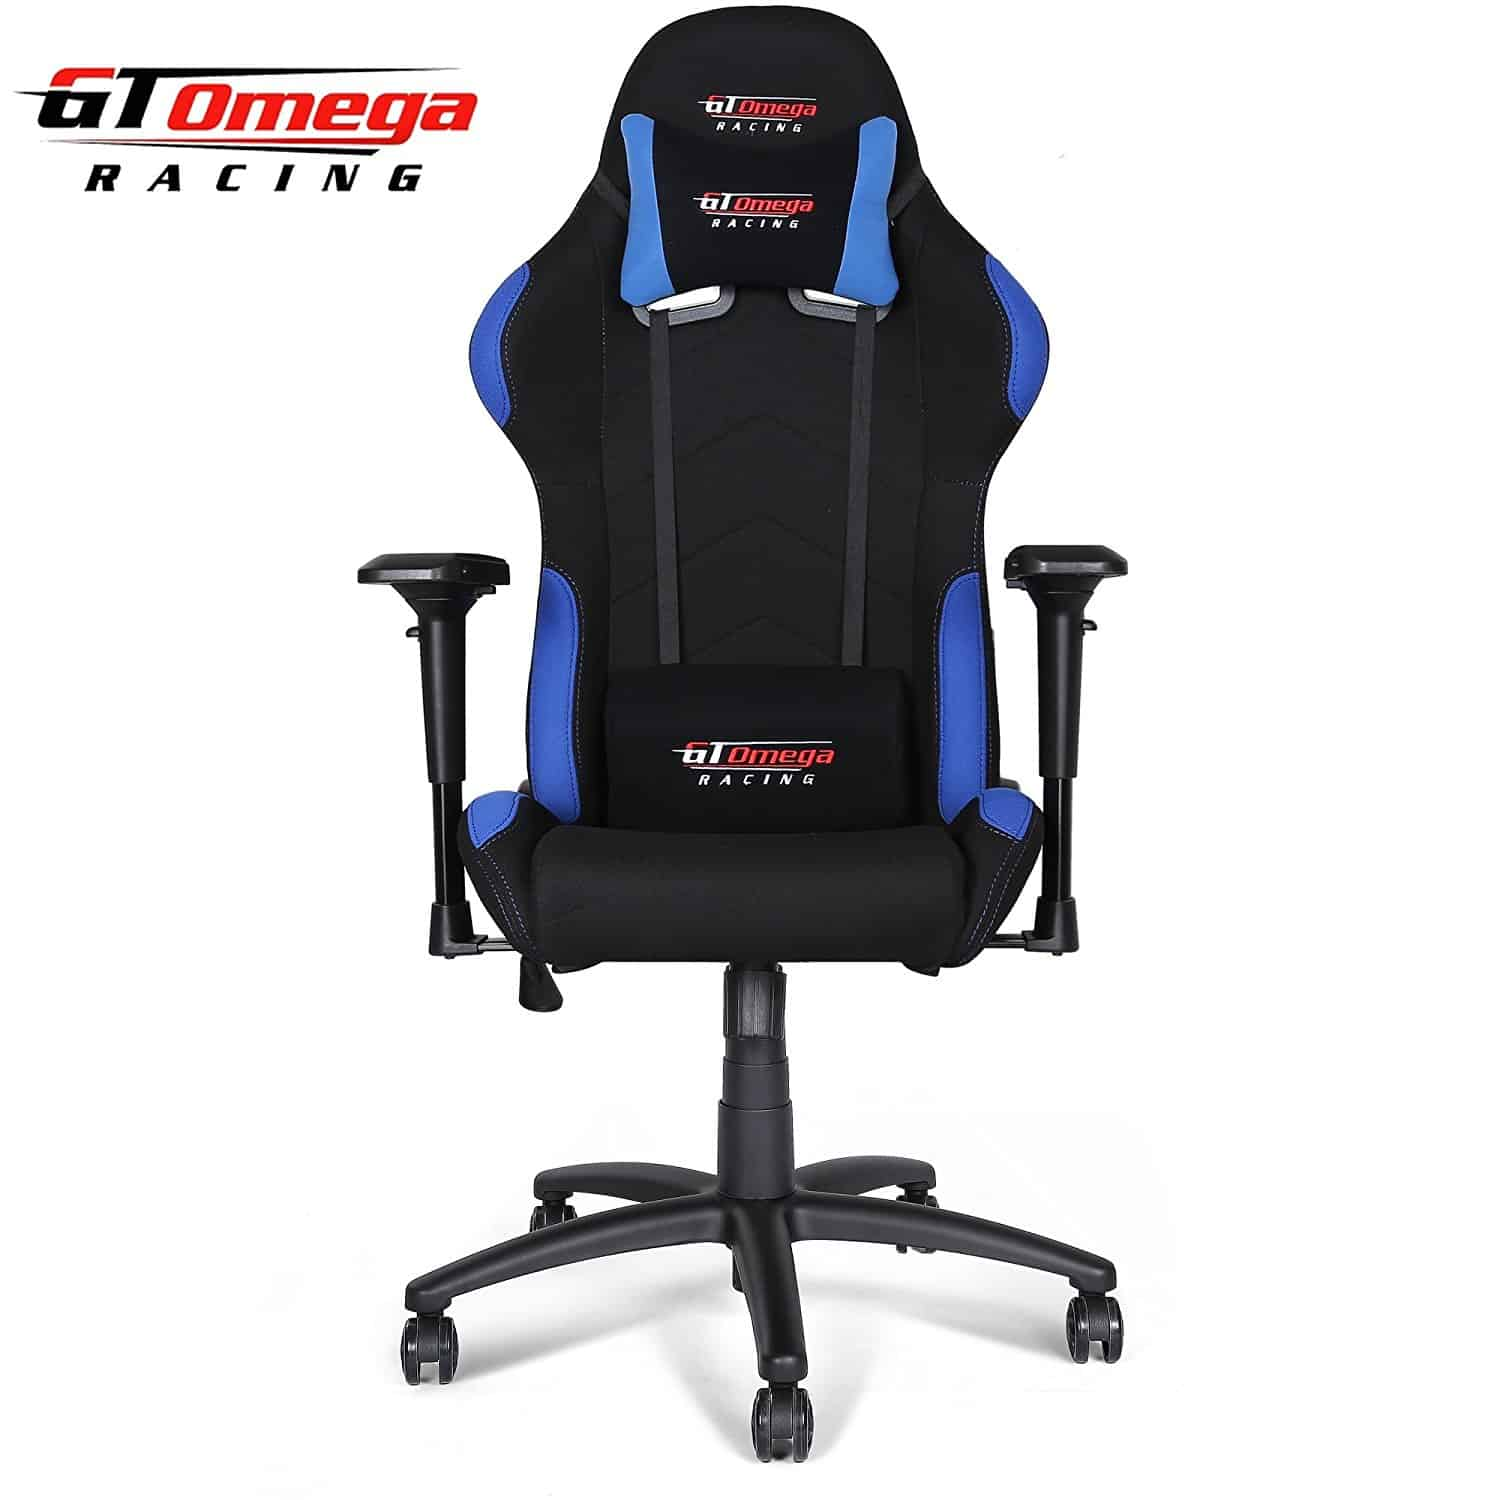 gt-omega-racing-gaming-chair